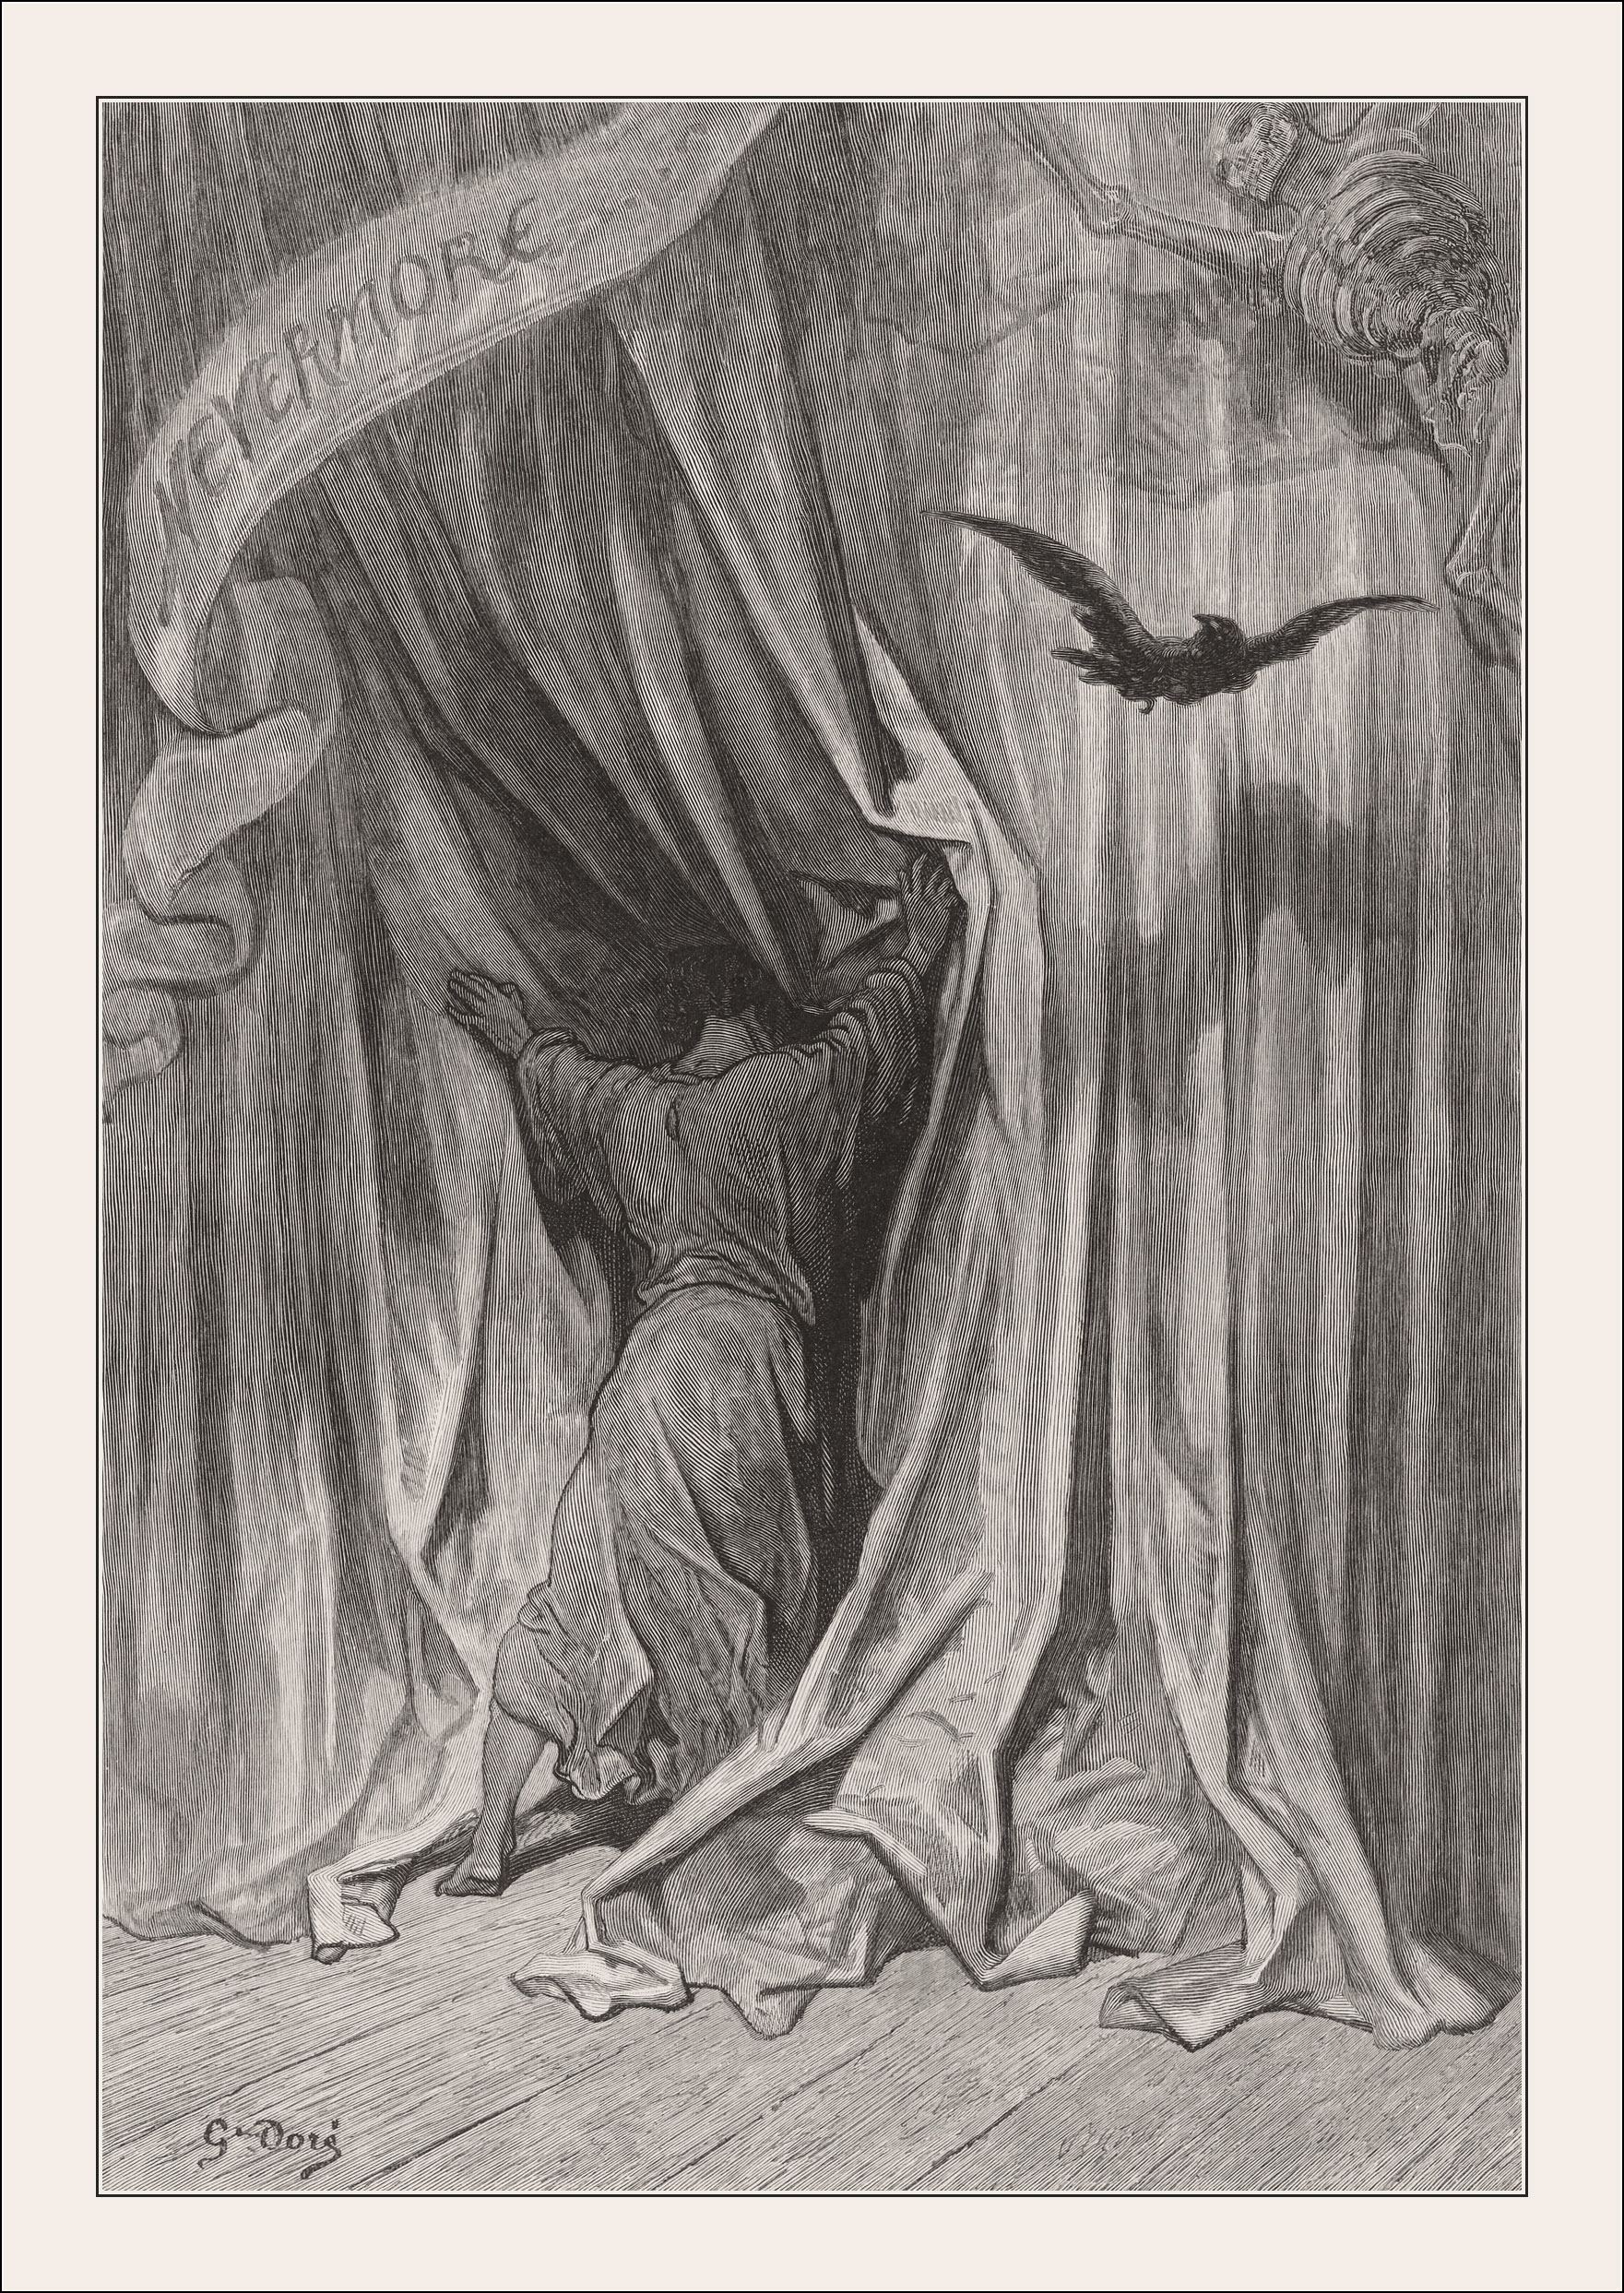 Gustave Doré, The Raven